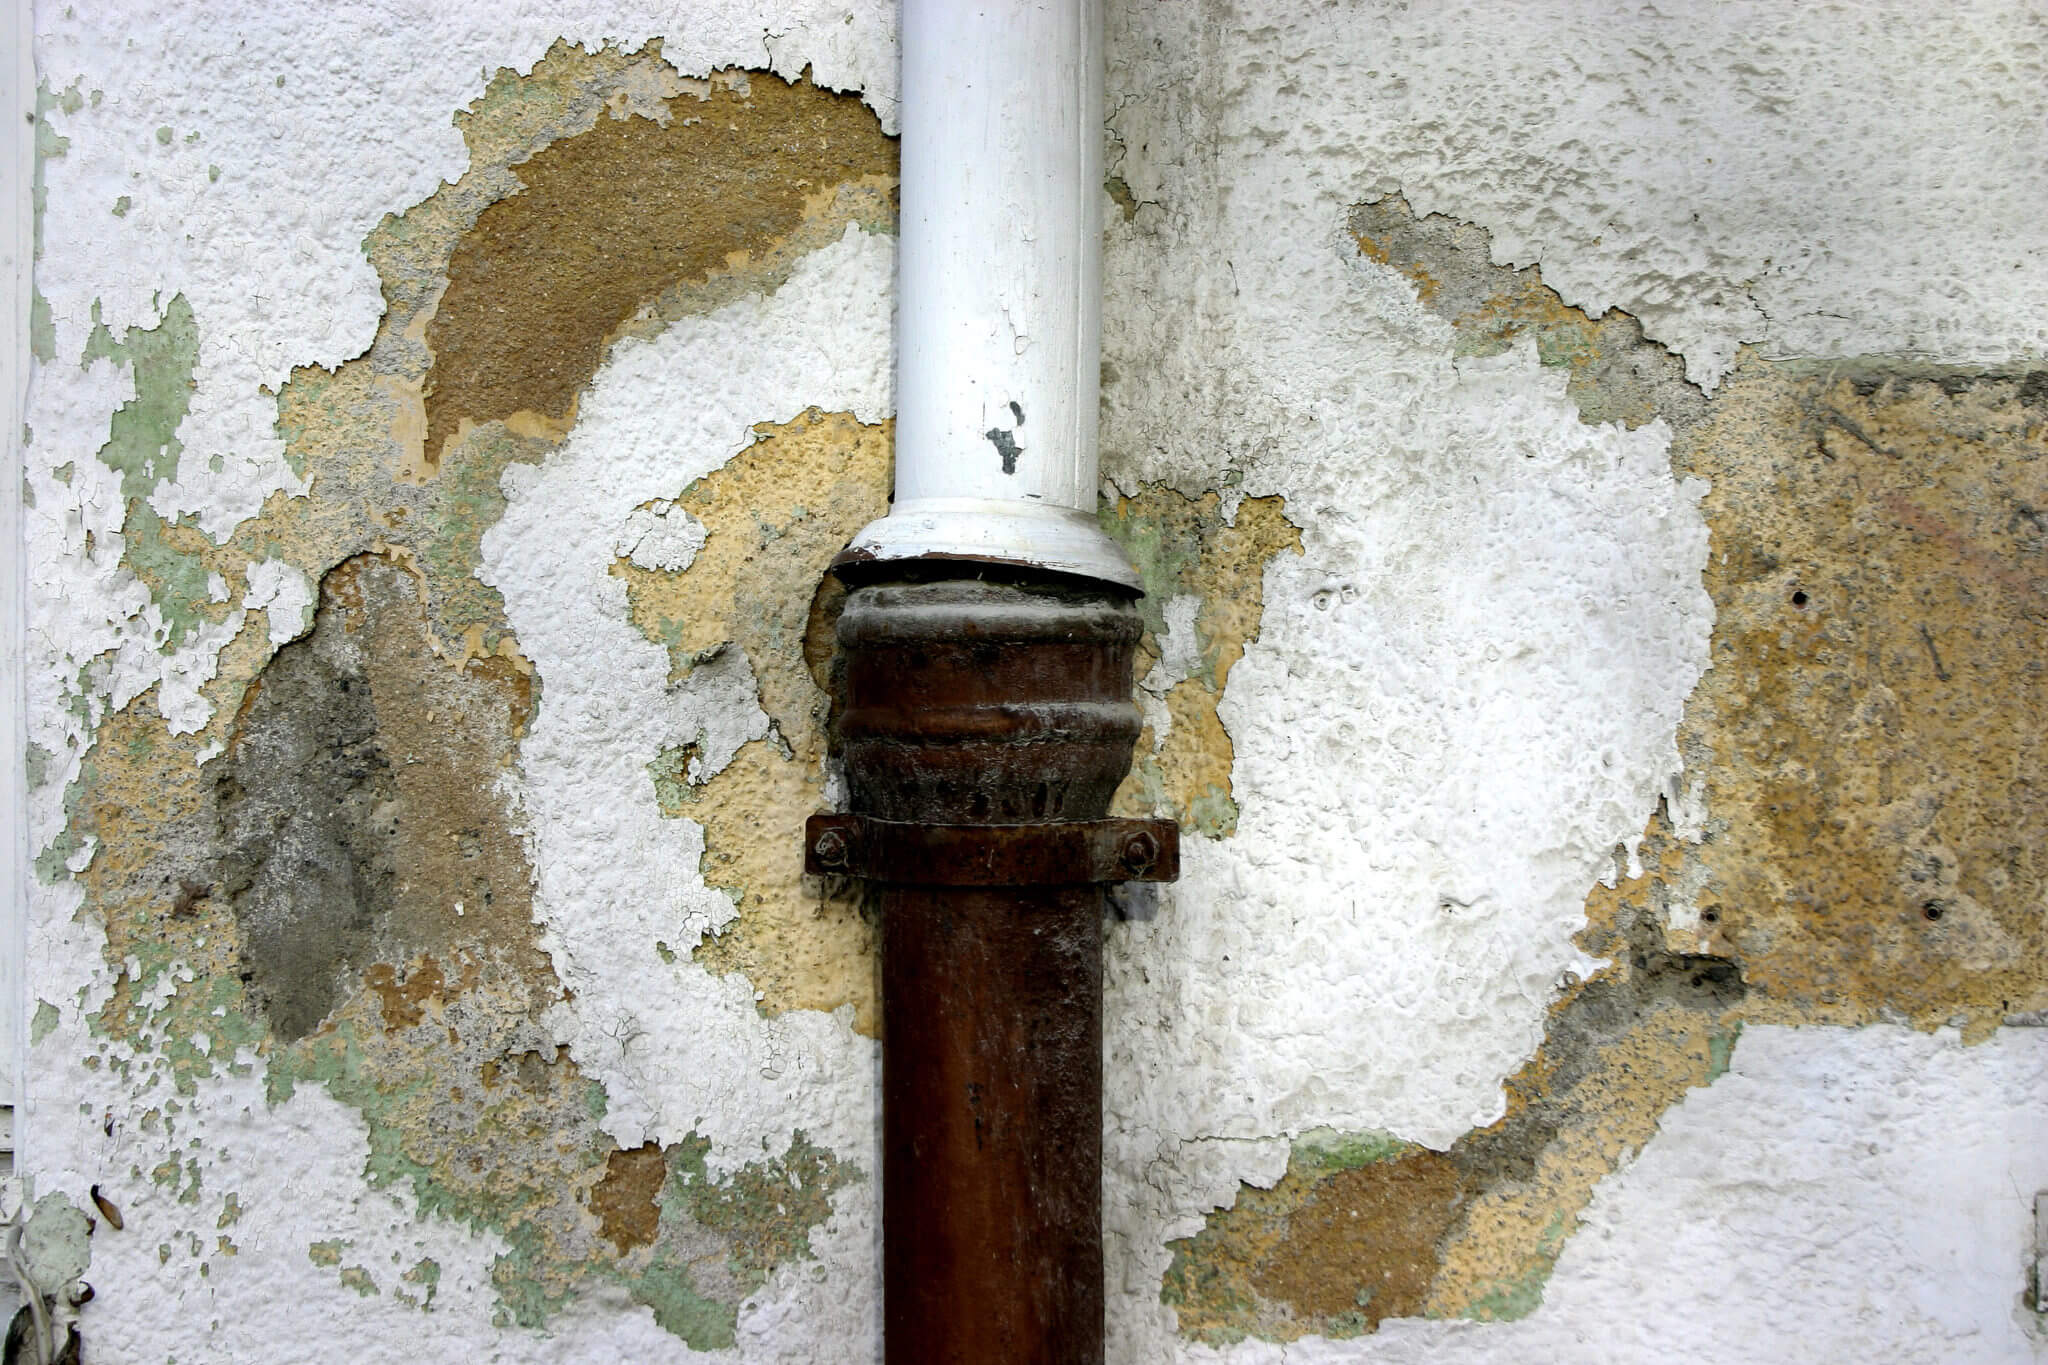 water damage from a broken pipe